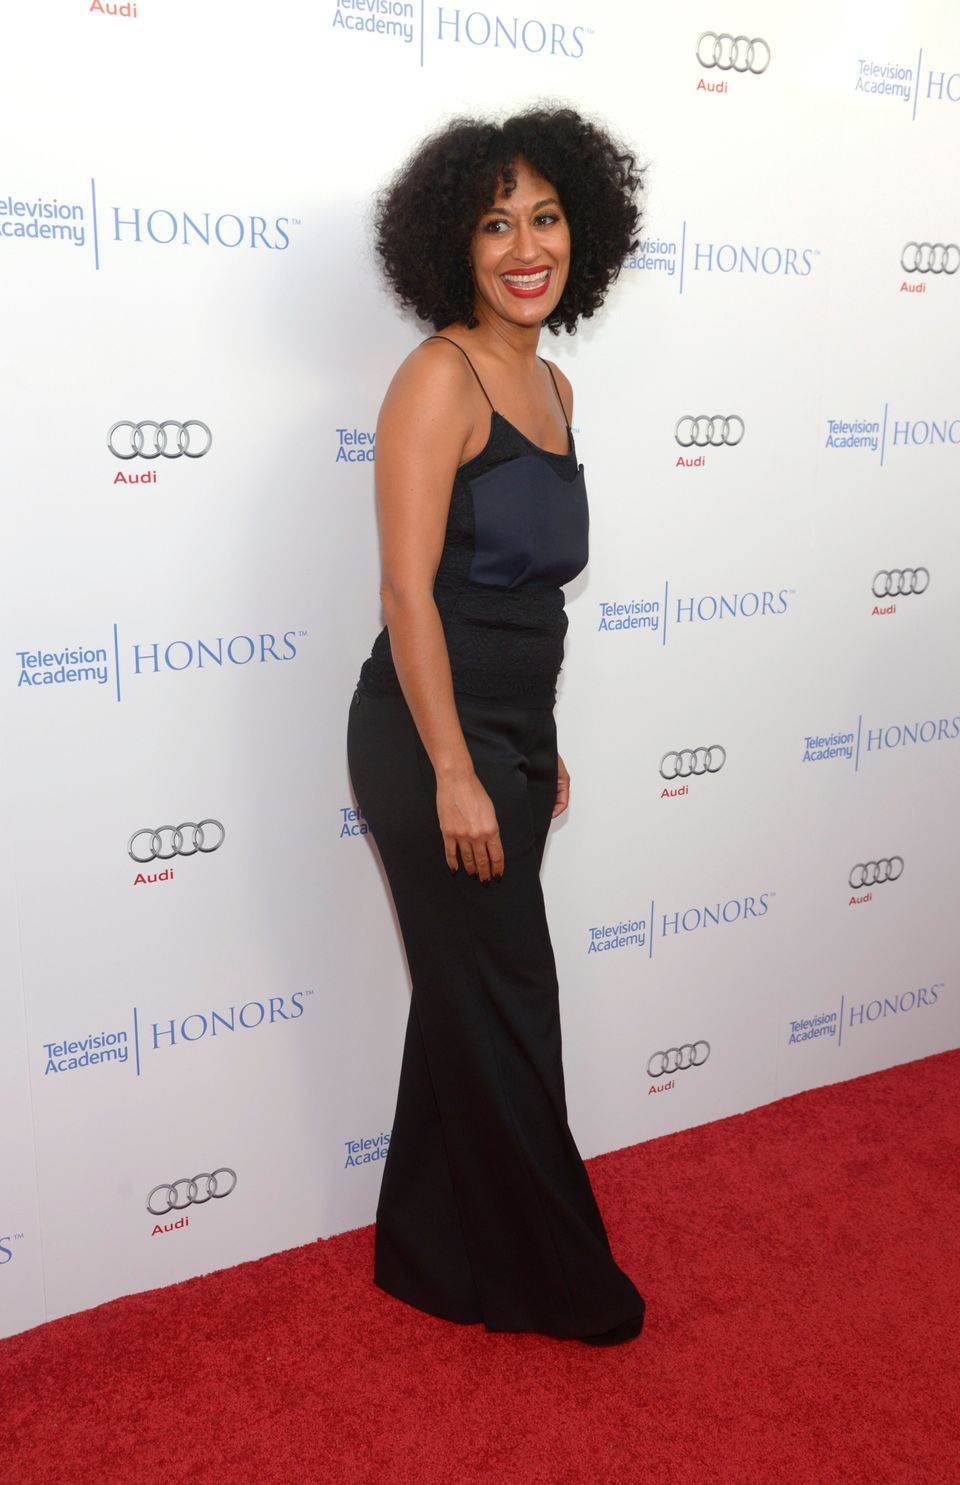 IMAGE DISTRIBUTED FOR THE TELEVISION ACADEMY - Tracee Ellis Ross arrives at the 8th annual Television Academy Honors at the M